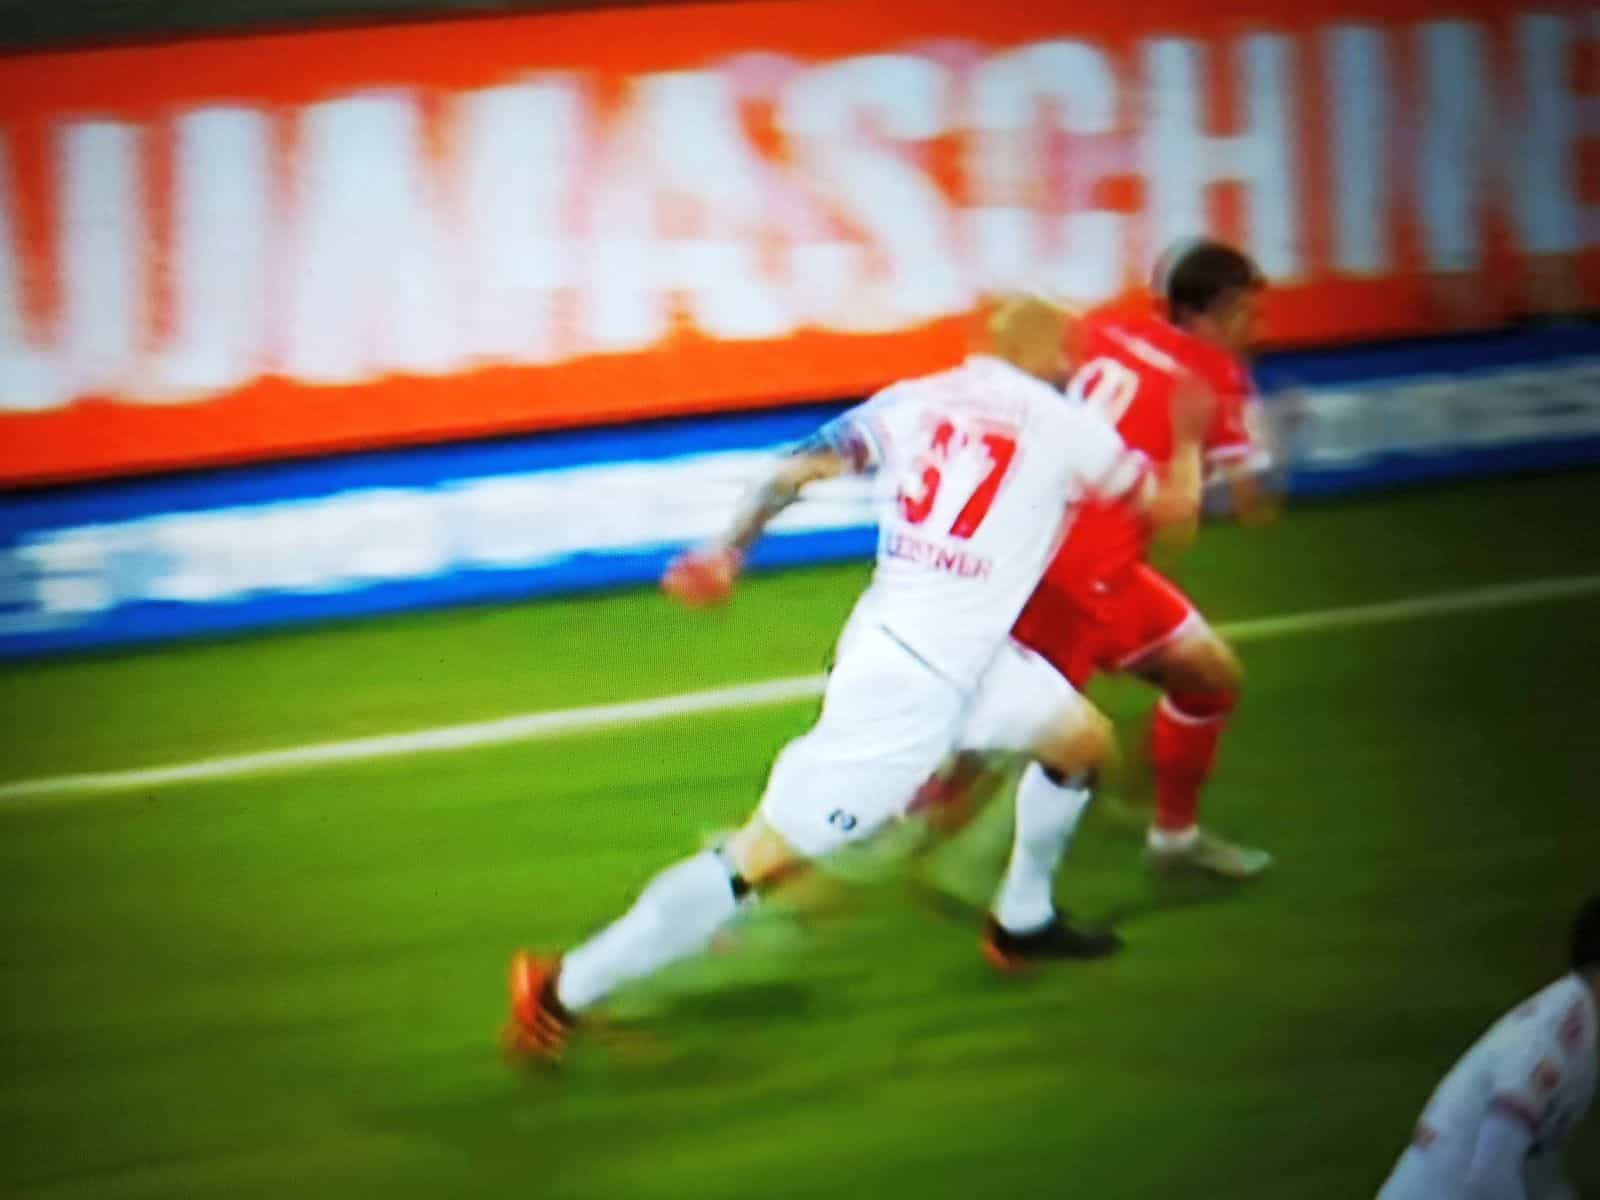 F95 vs HSV: Die Dynamik lag im Detail (Sky-Screenshot)